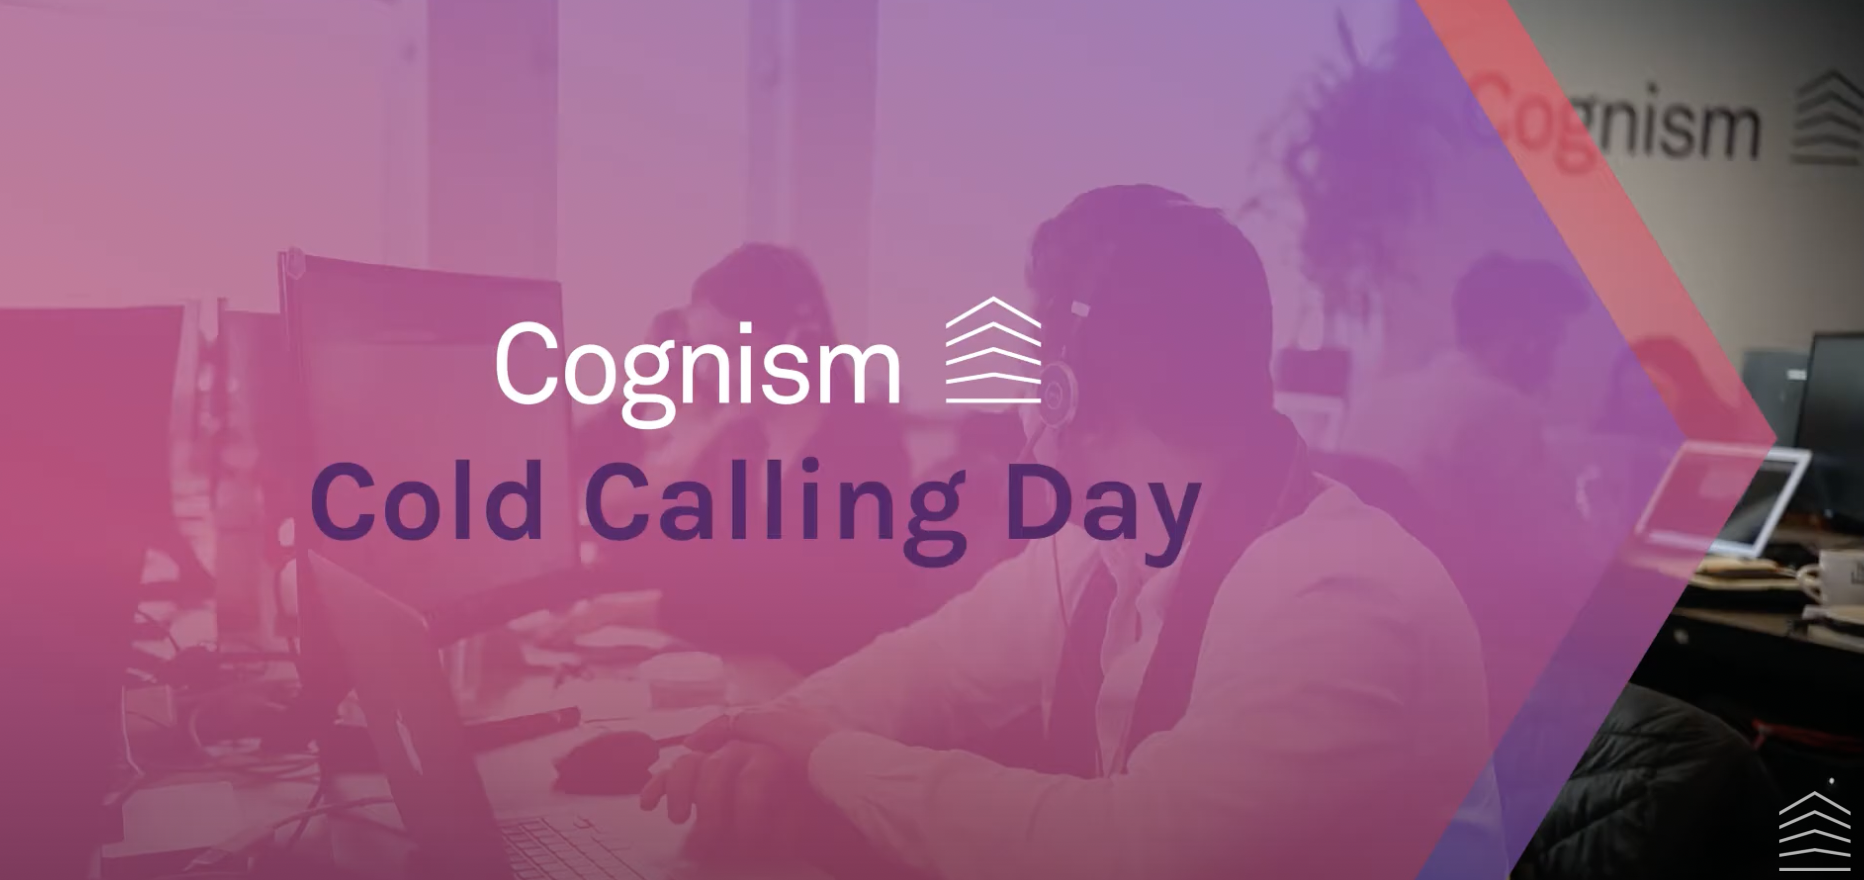 Cold Calling Day